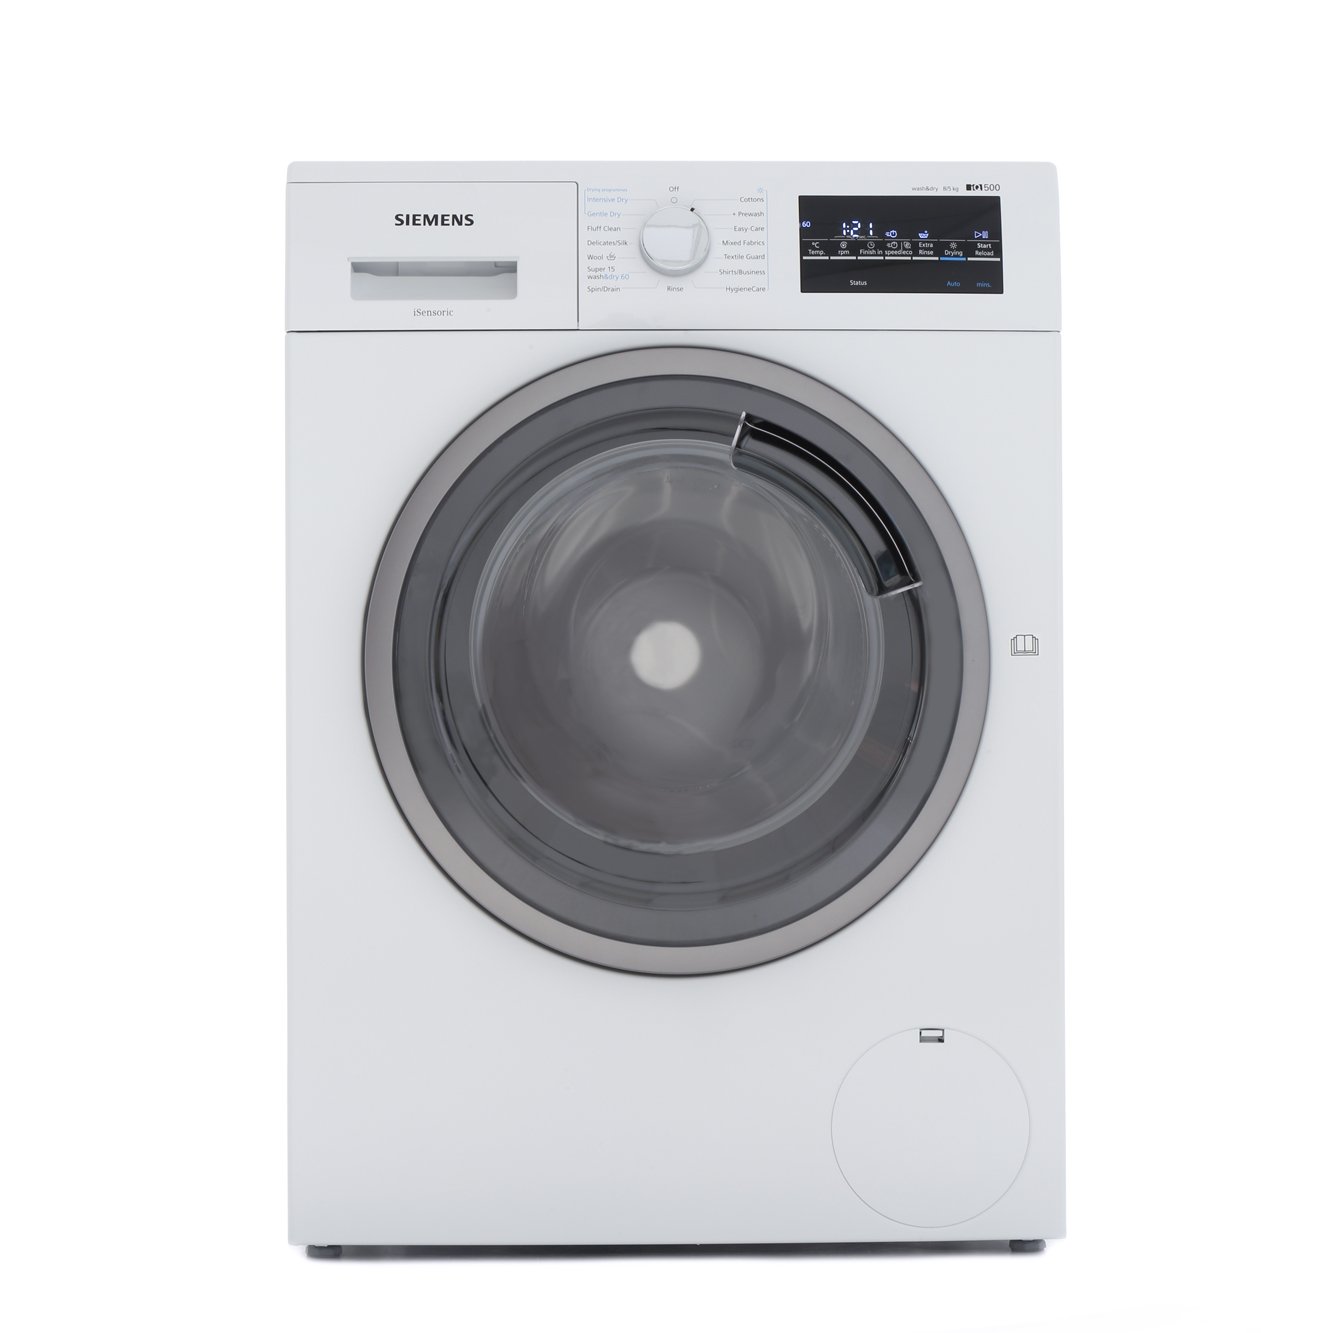 siemens wd15g421gb washer dryer white buy online today 365 electrical. Black Bedroom Furniture Sets. Home Design Ideas